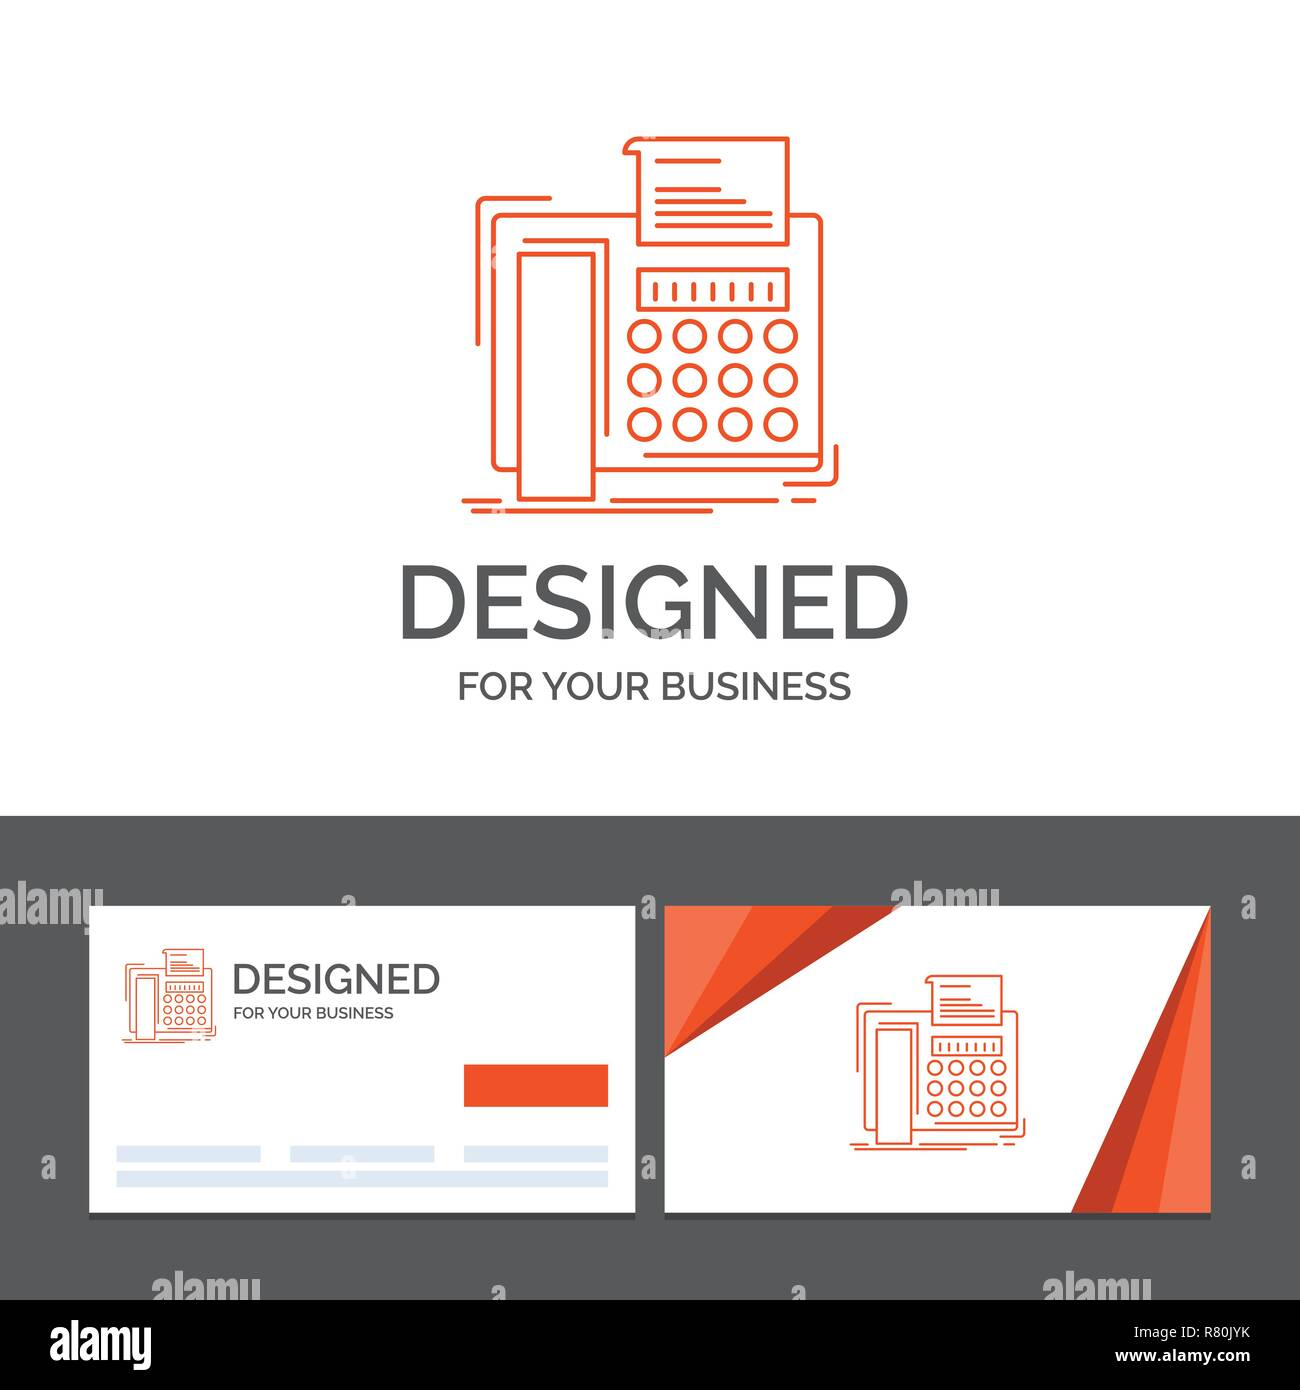 business logo template for fax message telephone telefax communication orange visiting cards with brand logo template stock vector image art alamy alamy